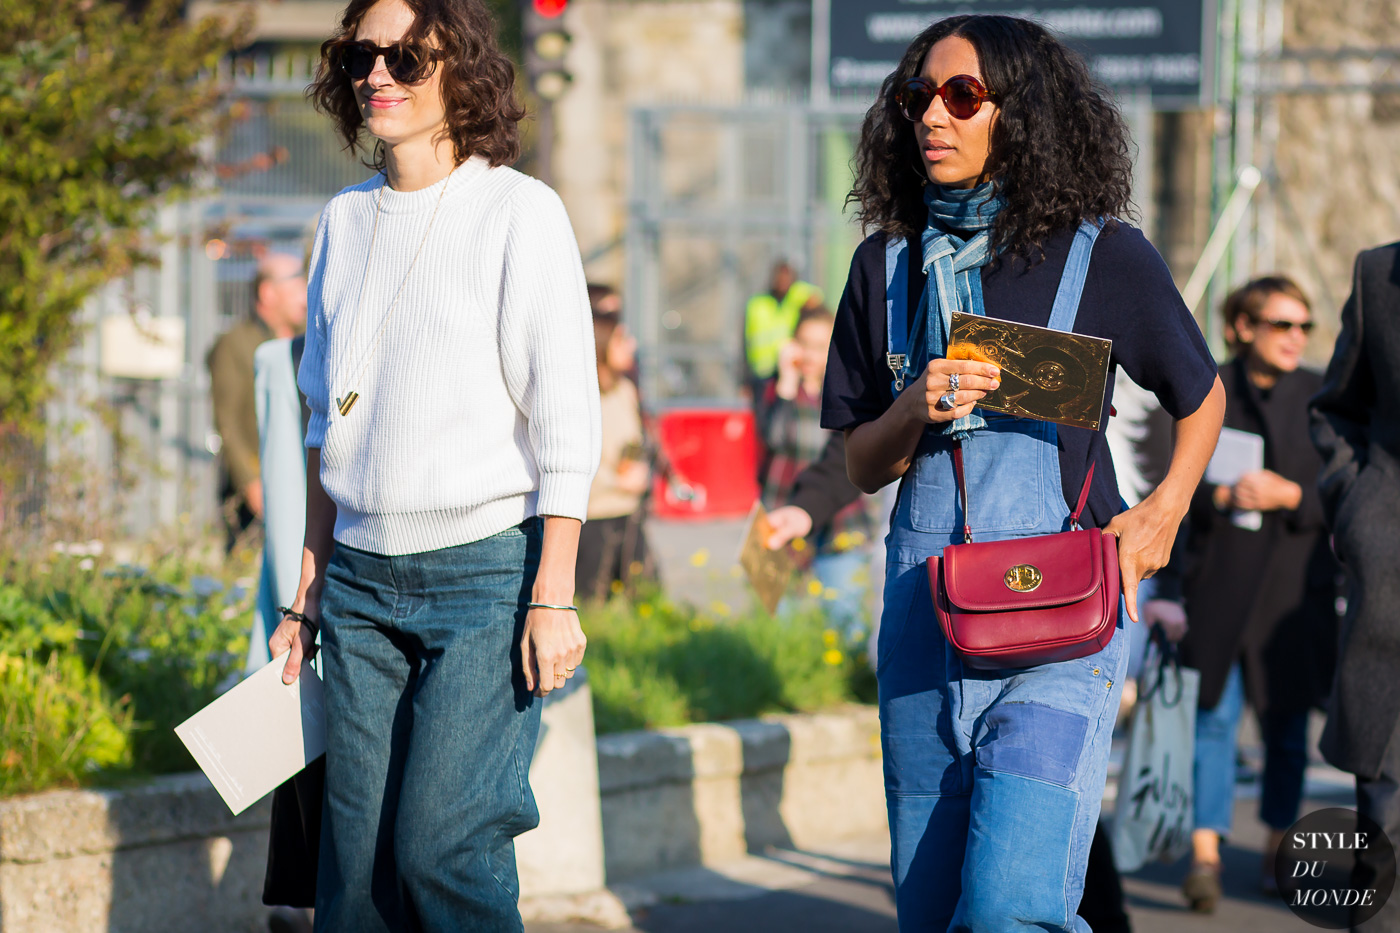 Nicole Phelps and Chioma Nnadi Street Style Street Fashion Streetsnaps by STYLEDUMONDE Street Style Fashion Photography